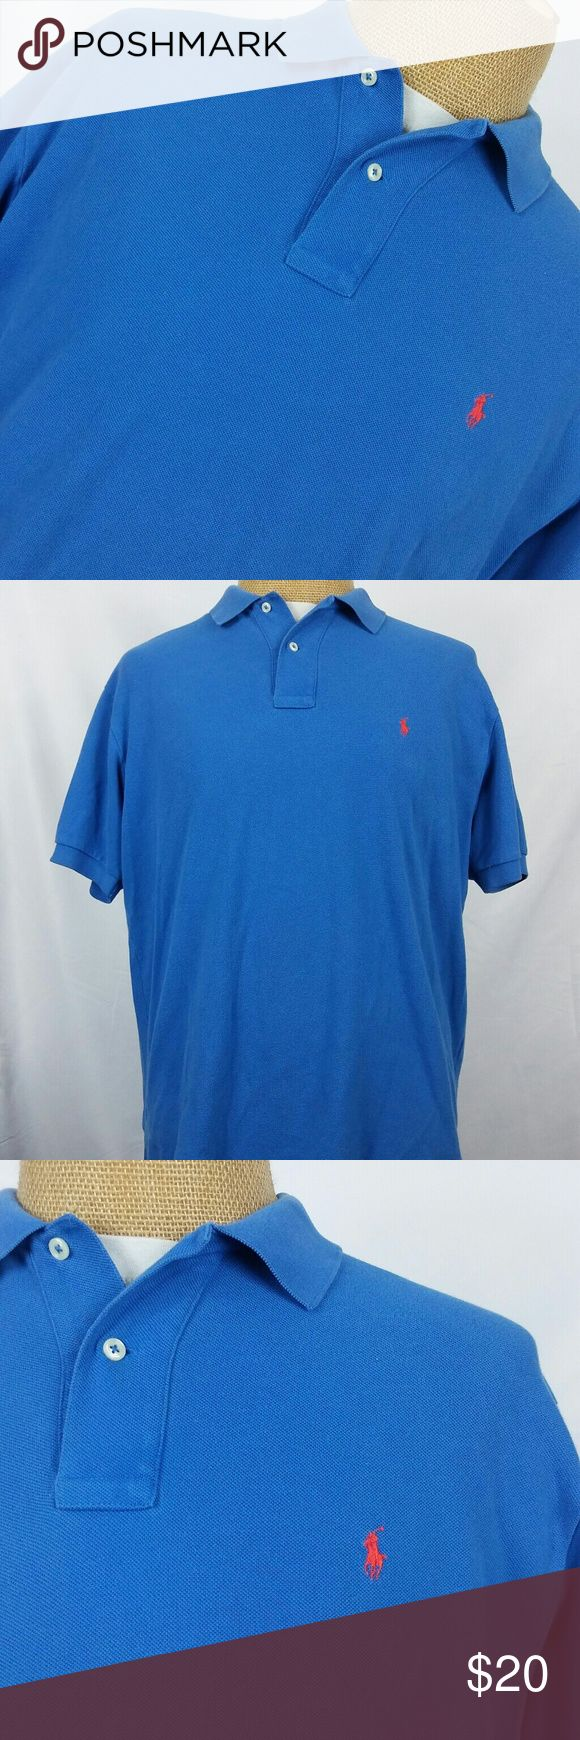 Polo Ralph Lauren Red Pony Blue Polo Shirt Very good condition Polo by Ralph Lauren Shirts Polos